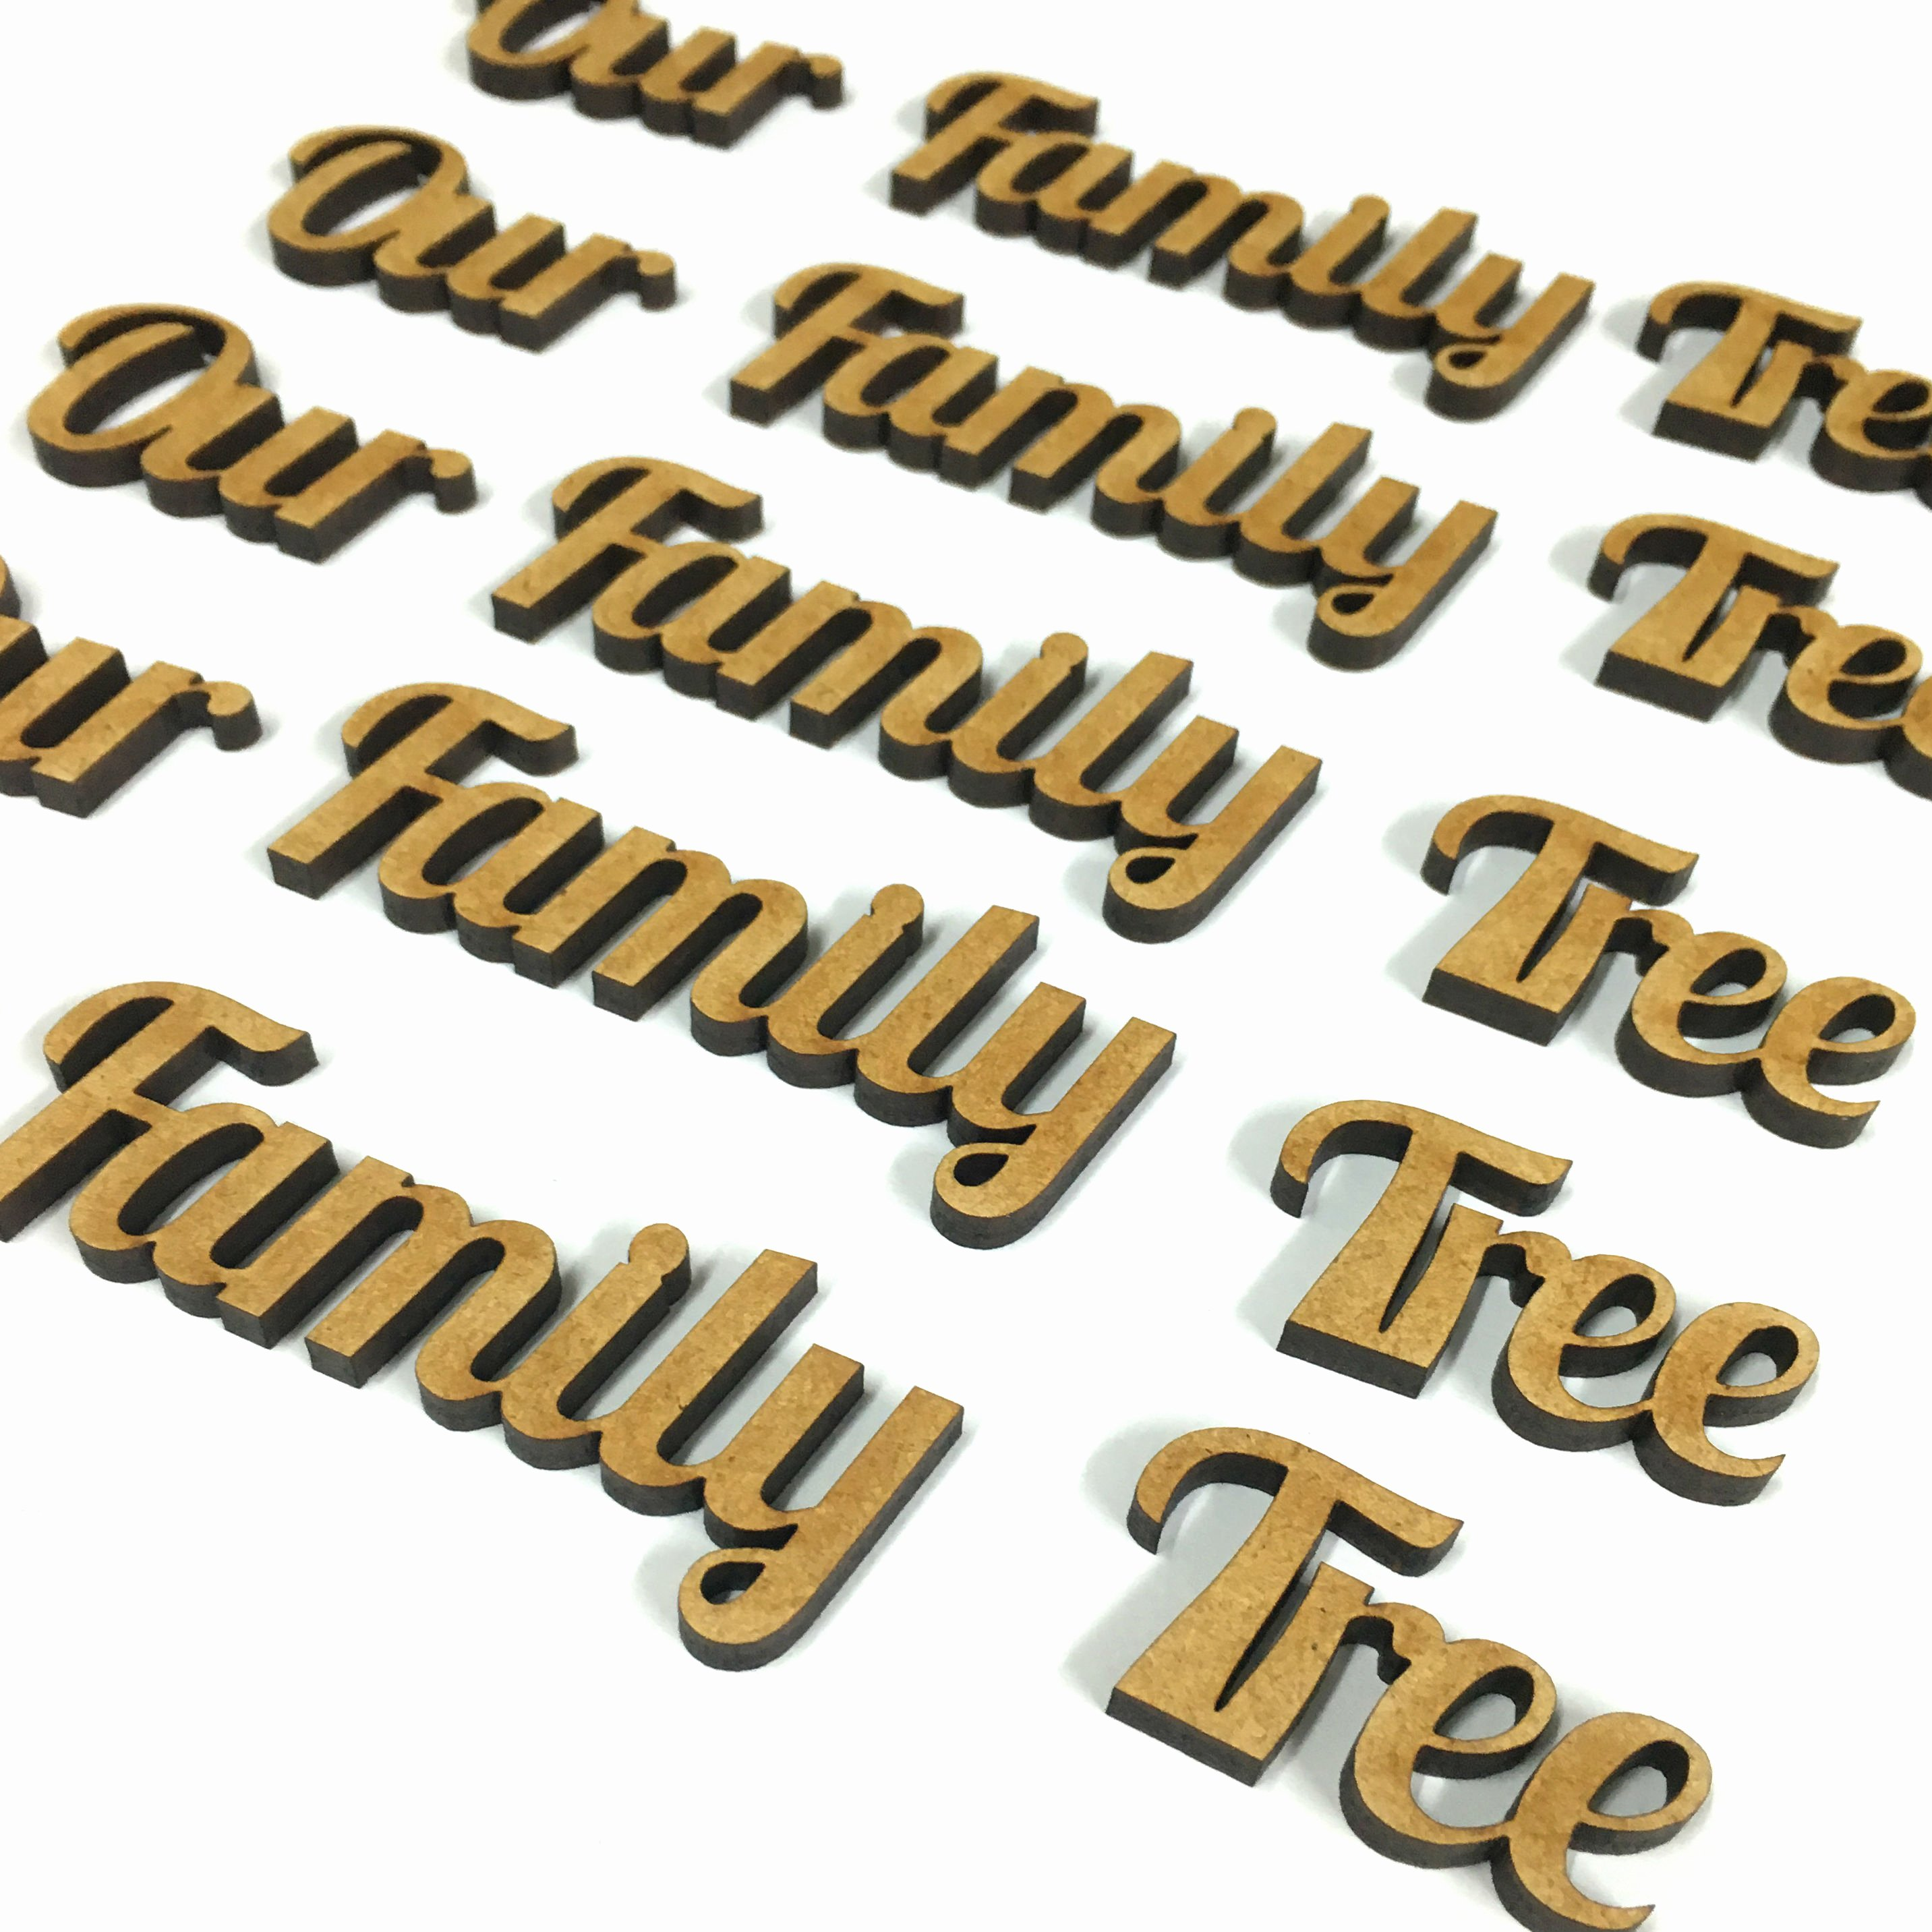 Family Tree Cut Out Awesome Pack Of 10 Wooden 4mm Mdf Our Family Tree Cut Out Words